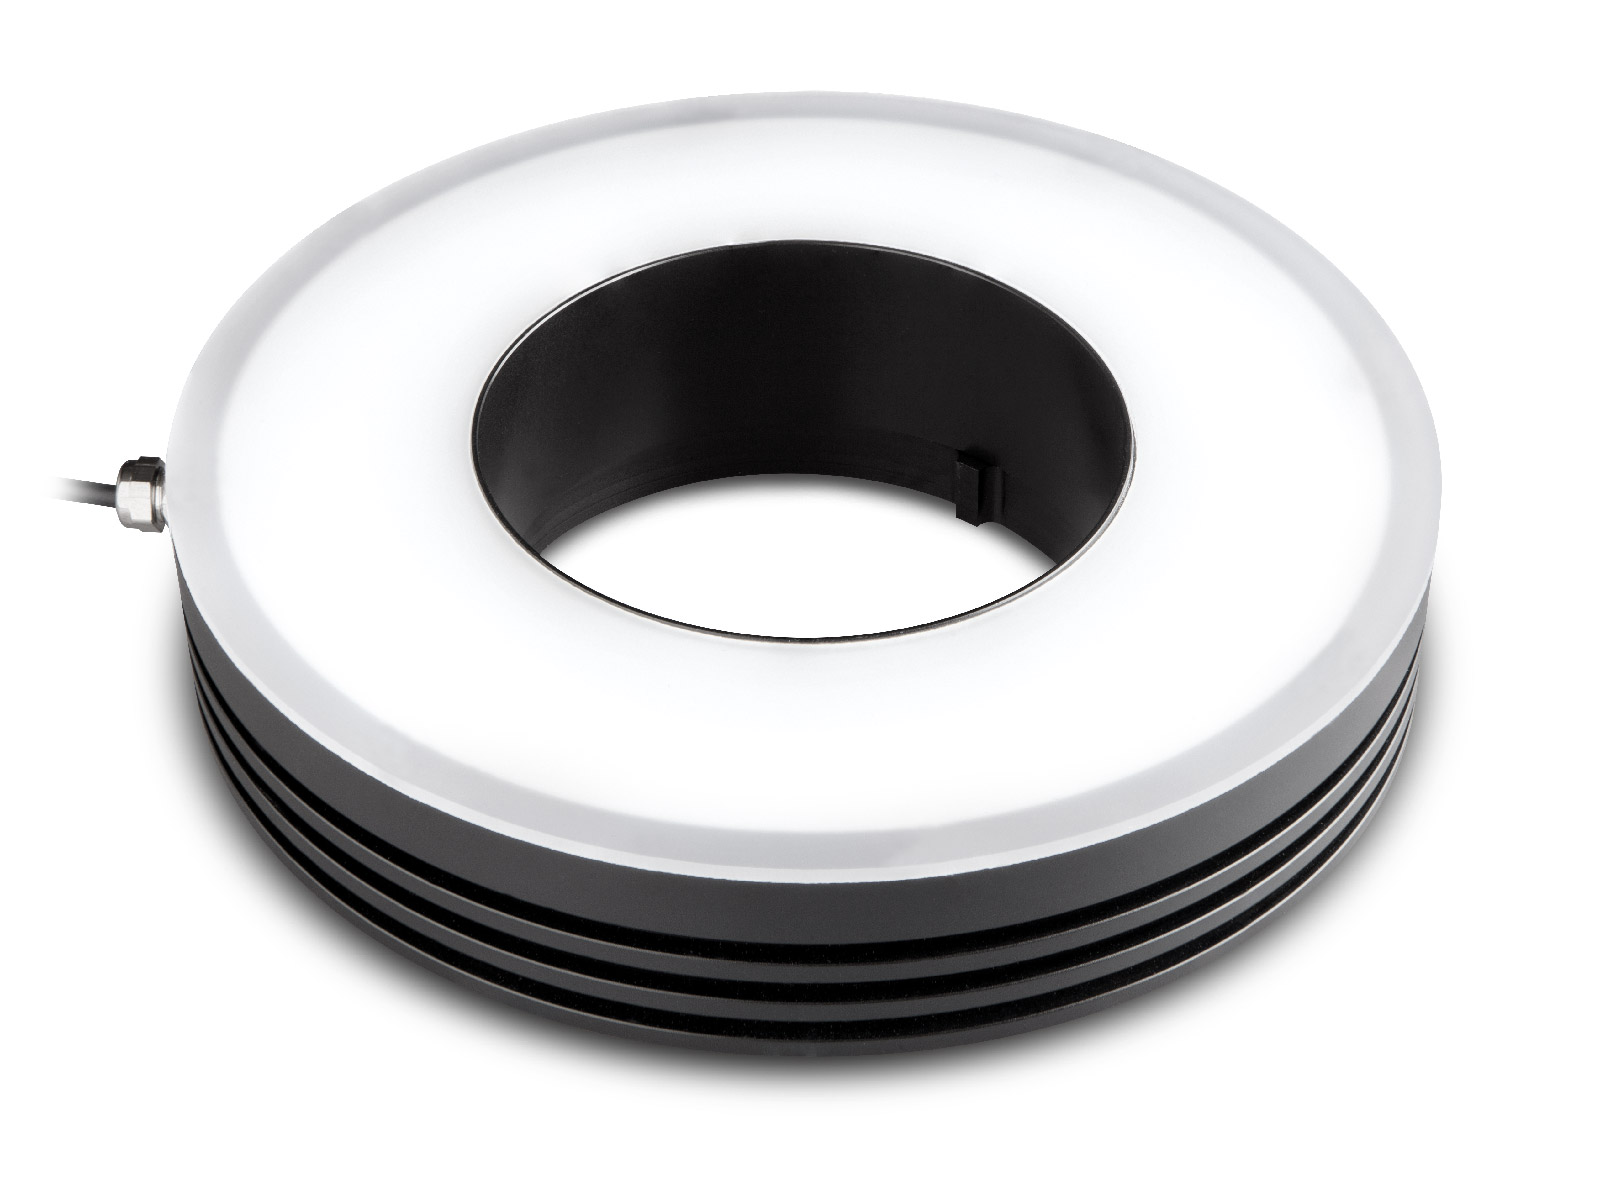 LTRN056NW ring light, LED-based, white